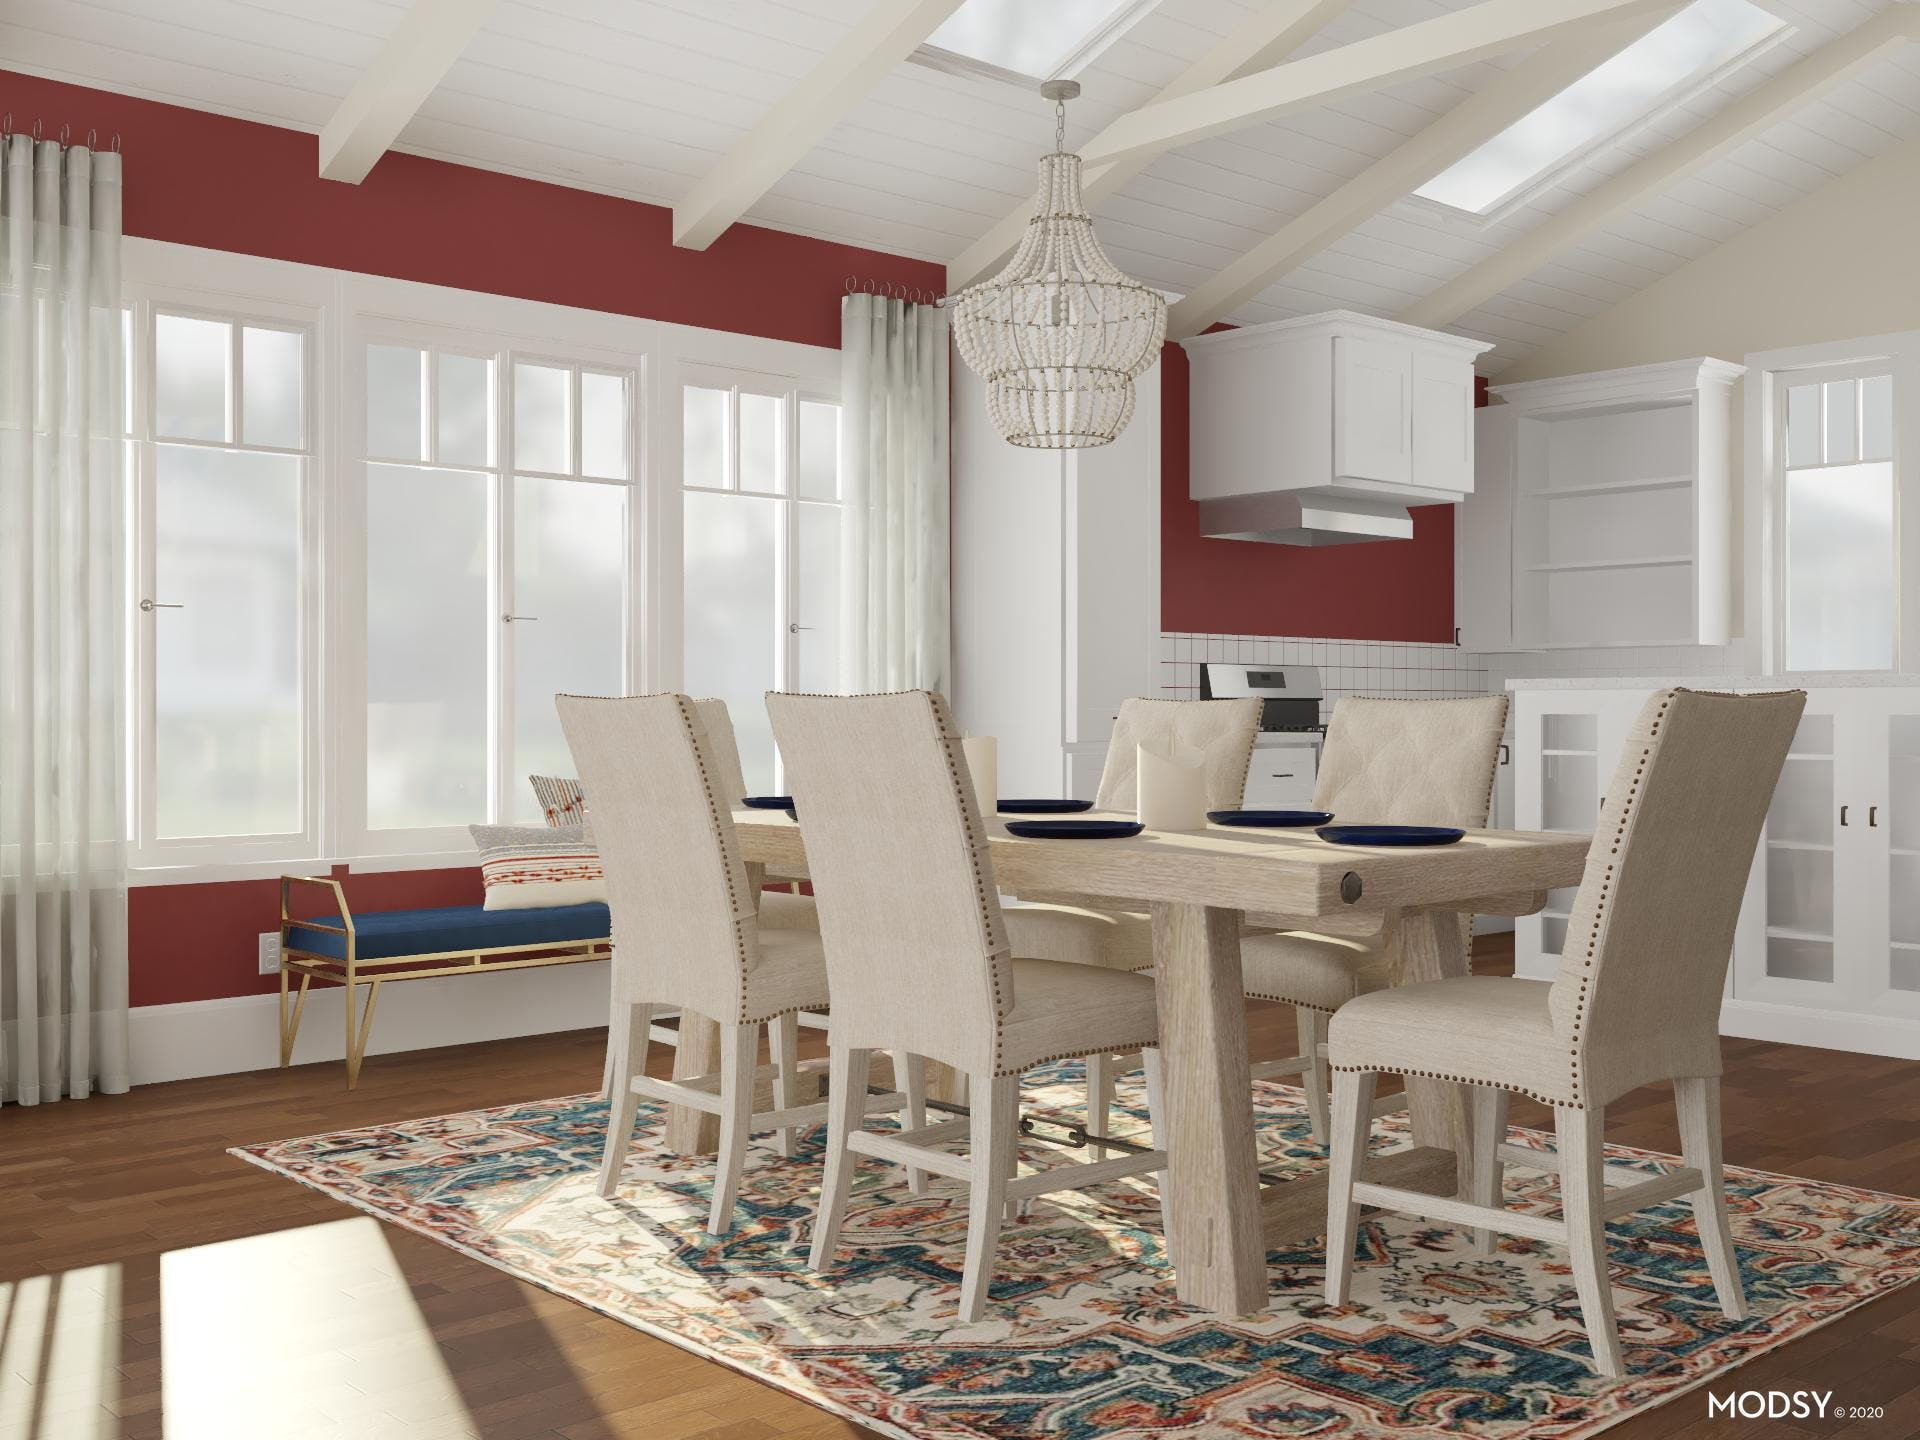 A Dining Room with Bold Red and Blue